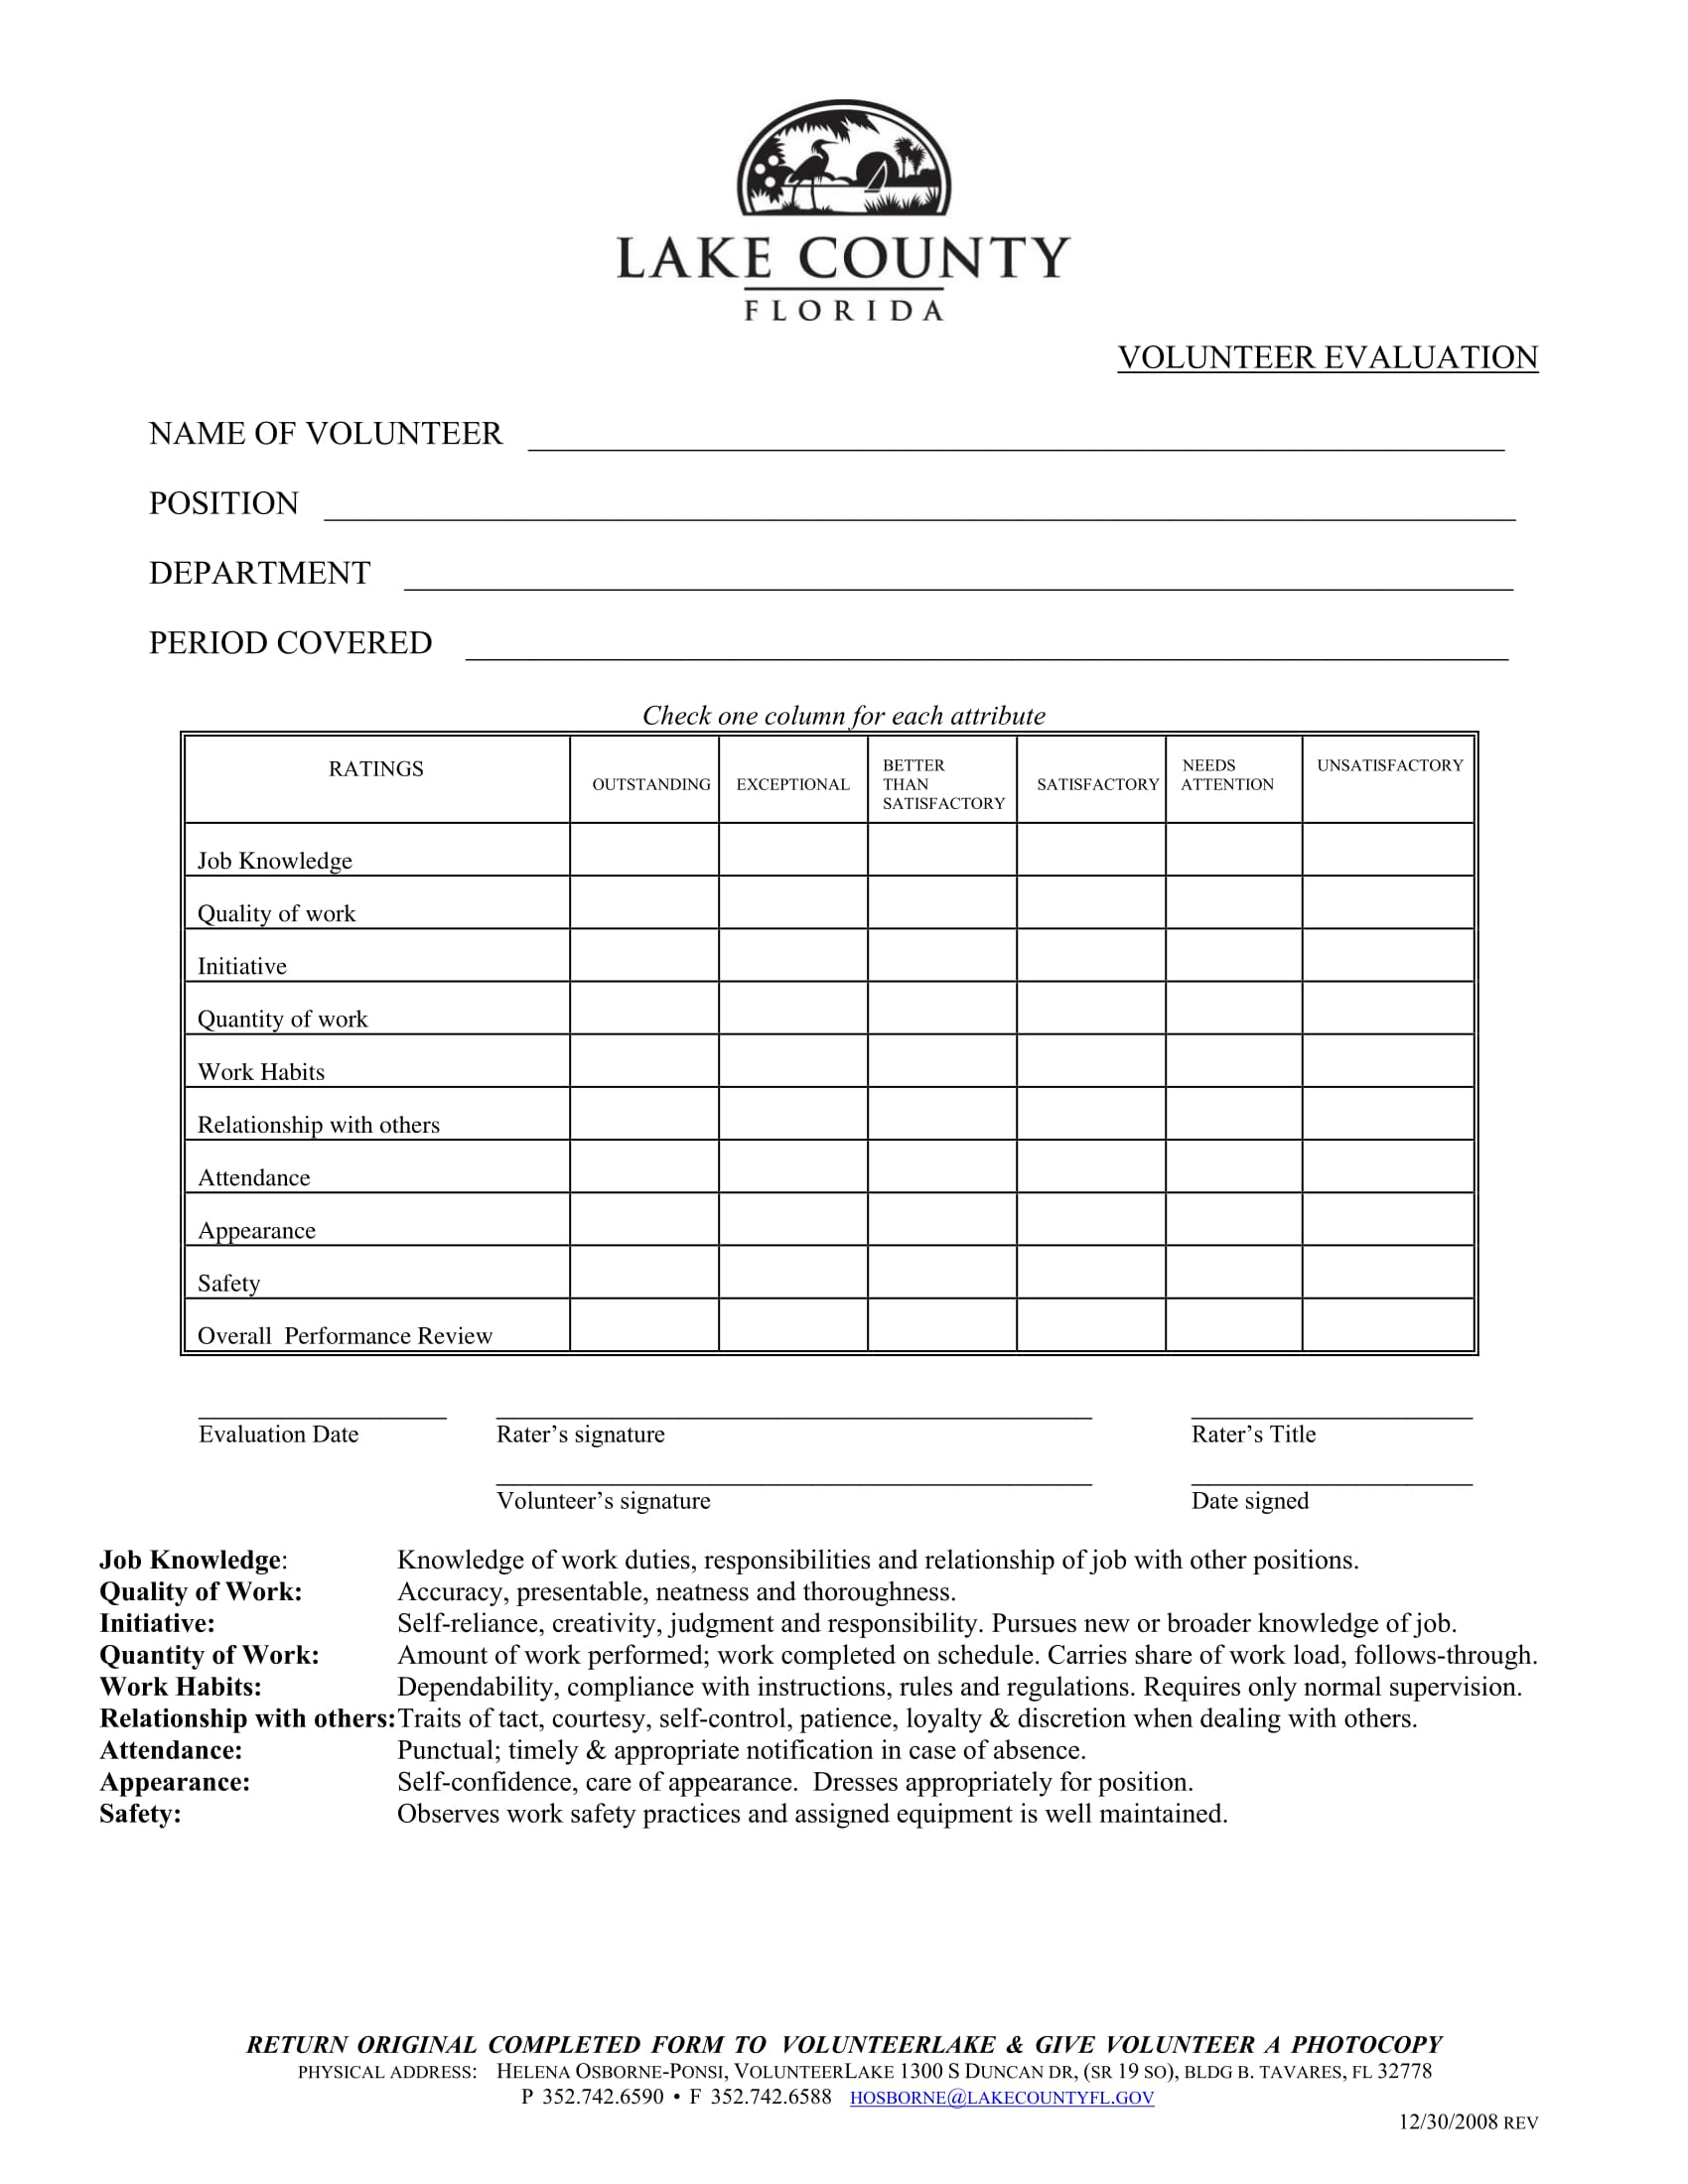 county volunteer evaluation form 1